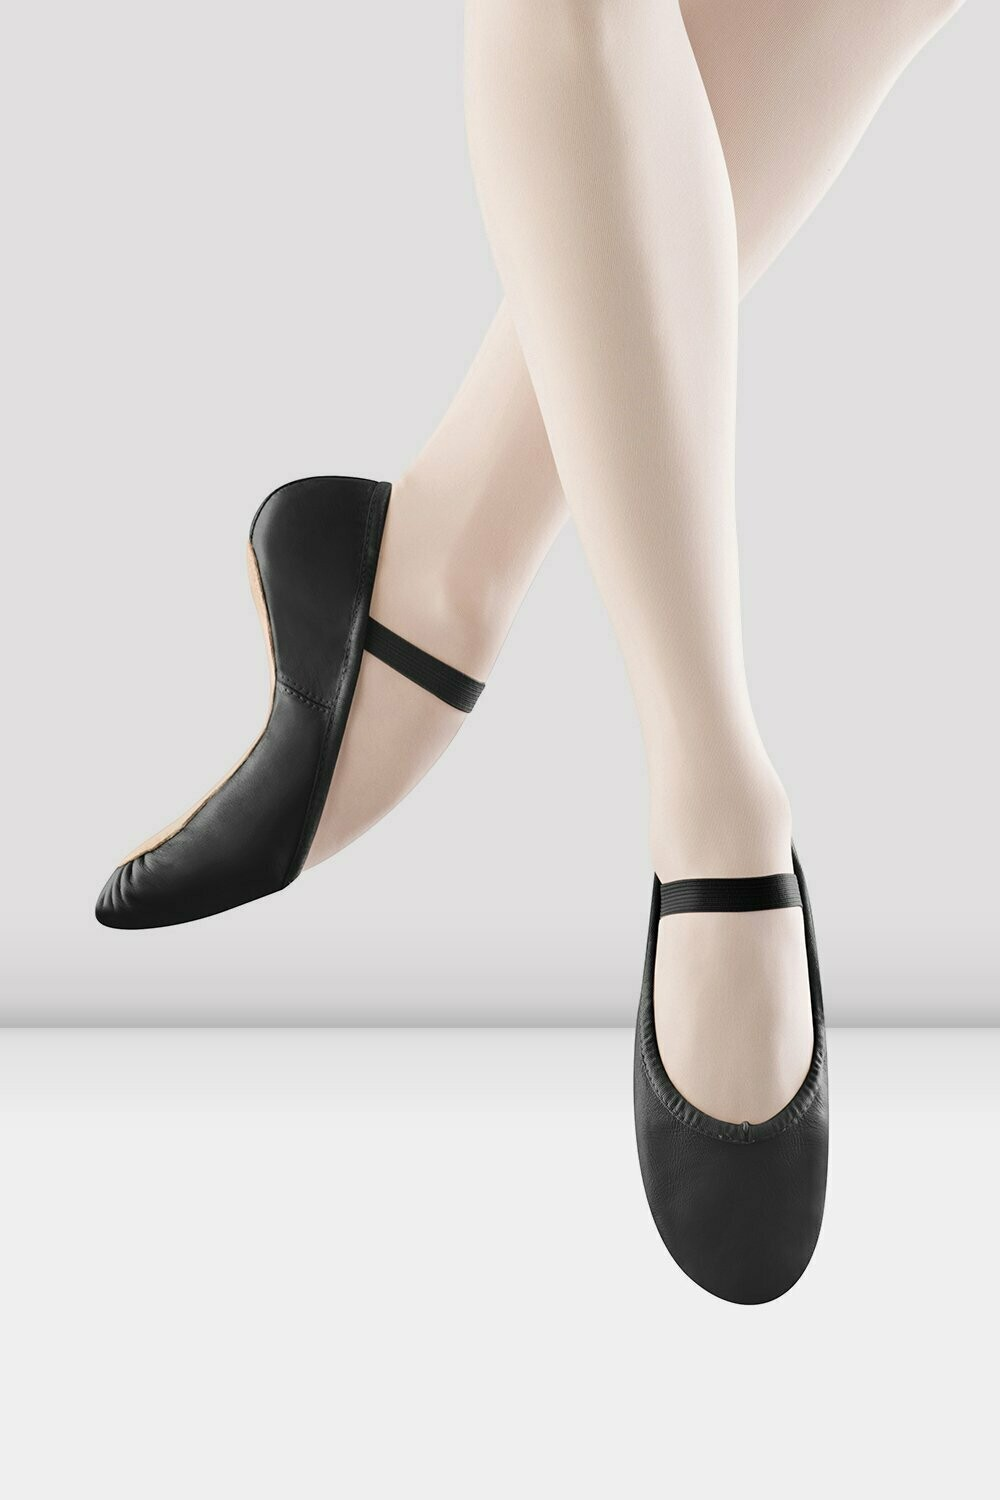 BL S0205L FULL SOLE BALLET DANSOFT